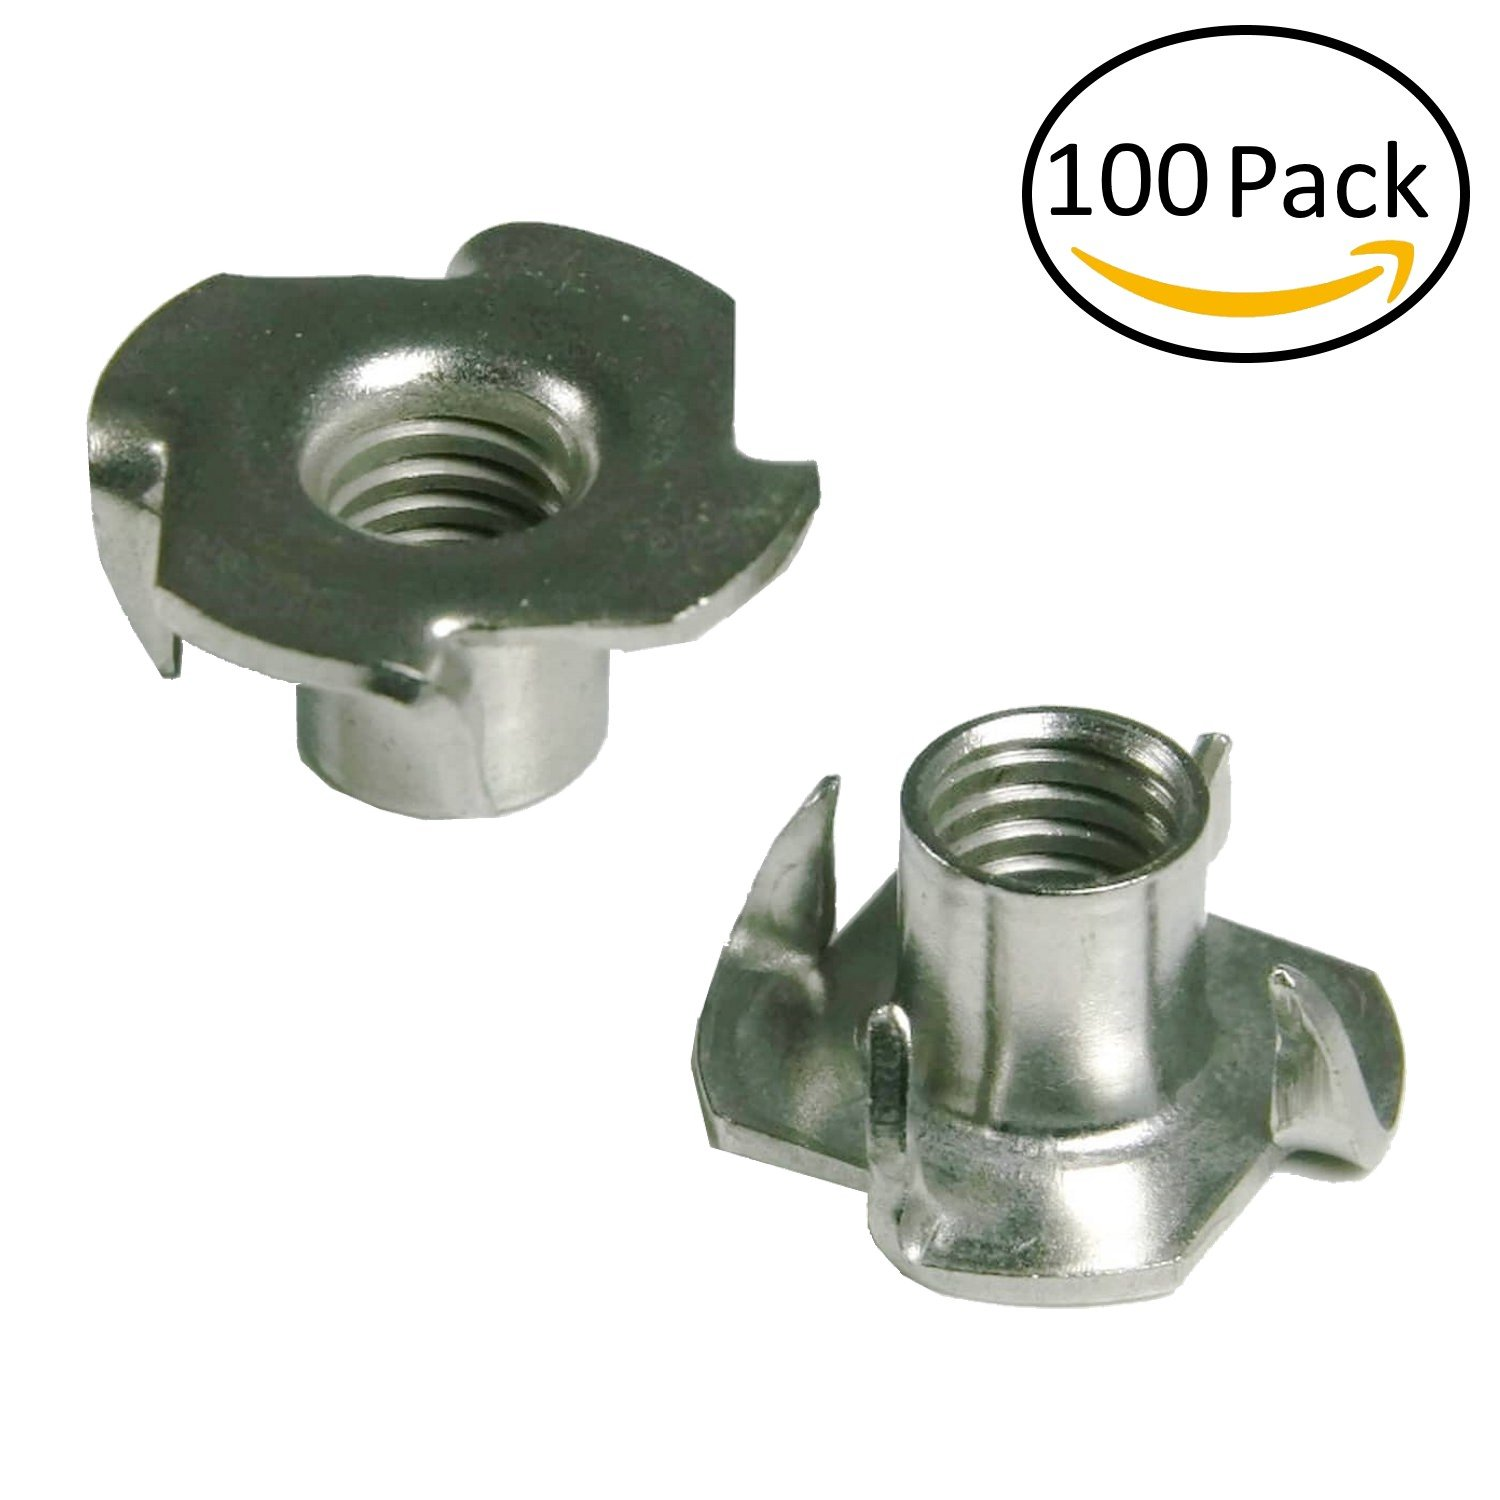 1/4-20 T Nuts - 4 Prongs - Zinc Plated -For Cabinetry, Rock Climbing Walls, Woodworking, etc. - .25 Dia. - 100 pcs.